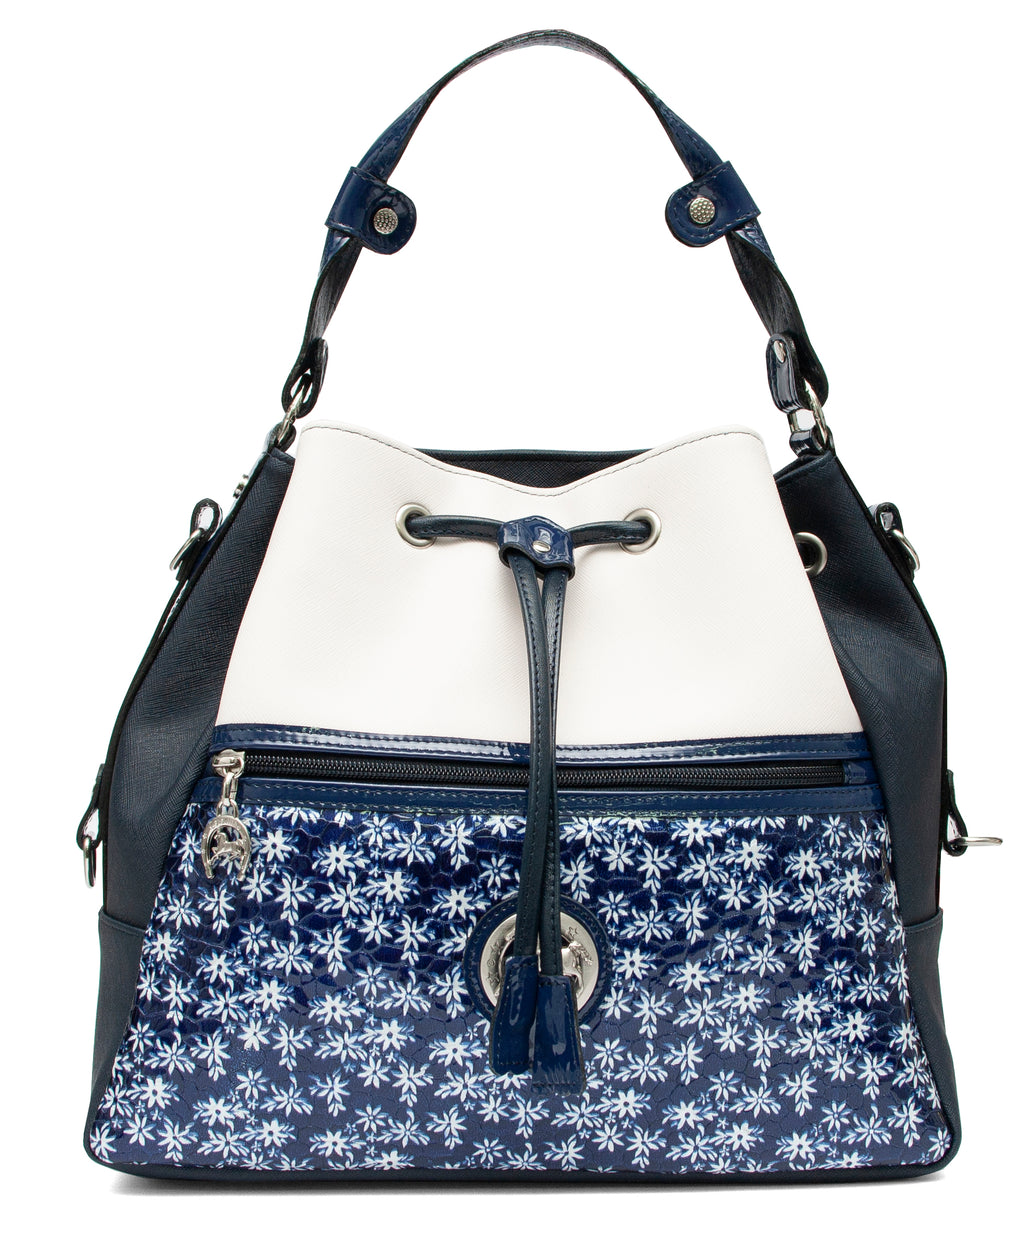 Serenity Blue Bucket Bag